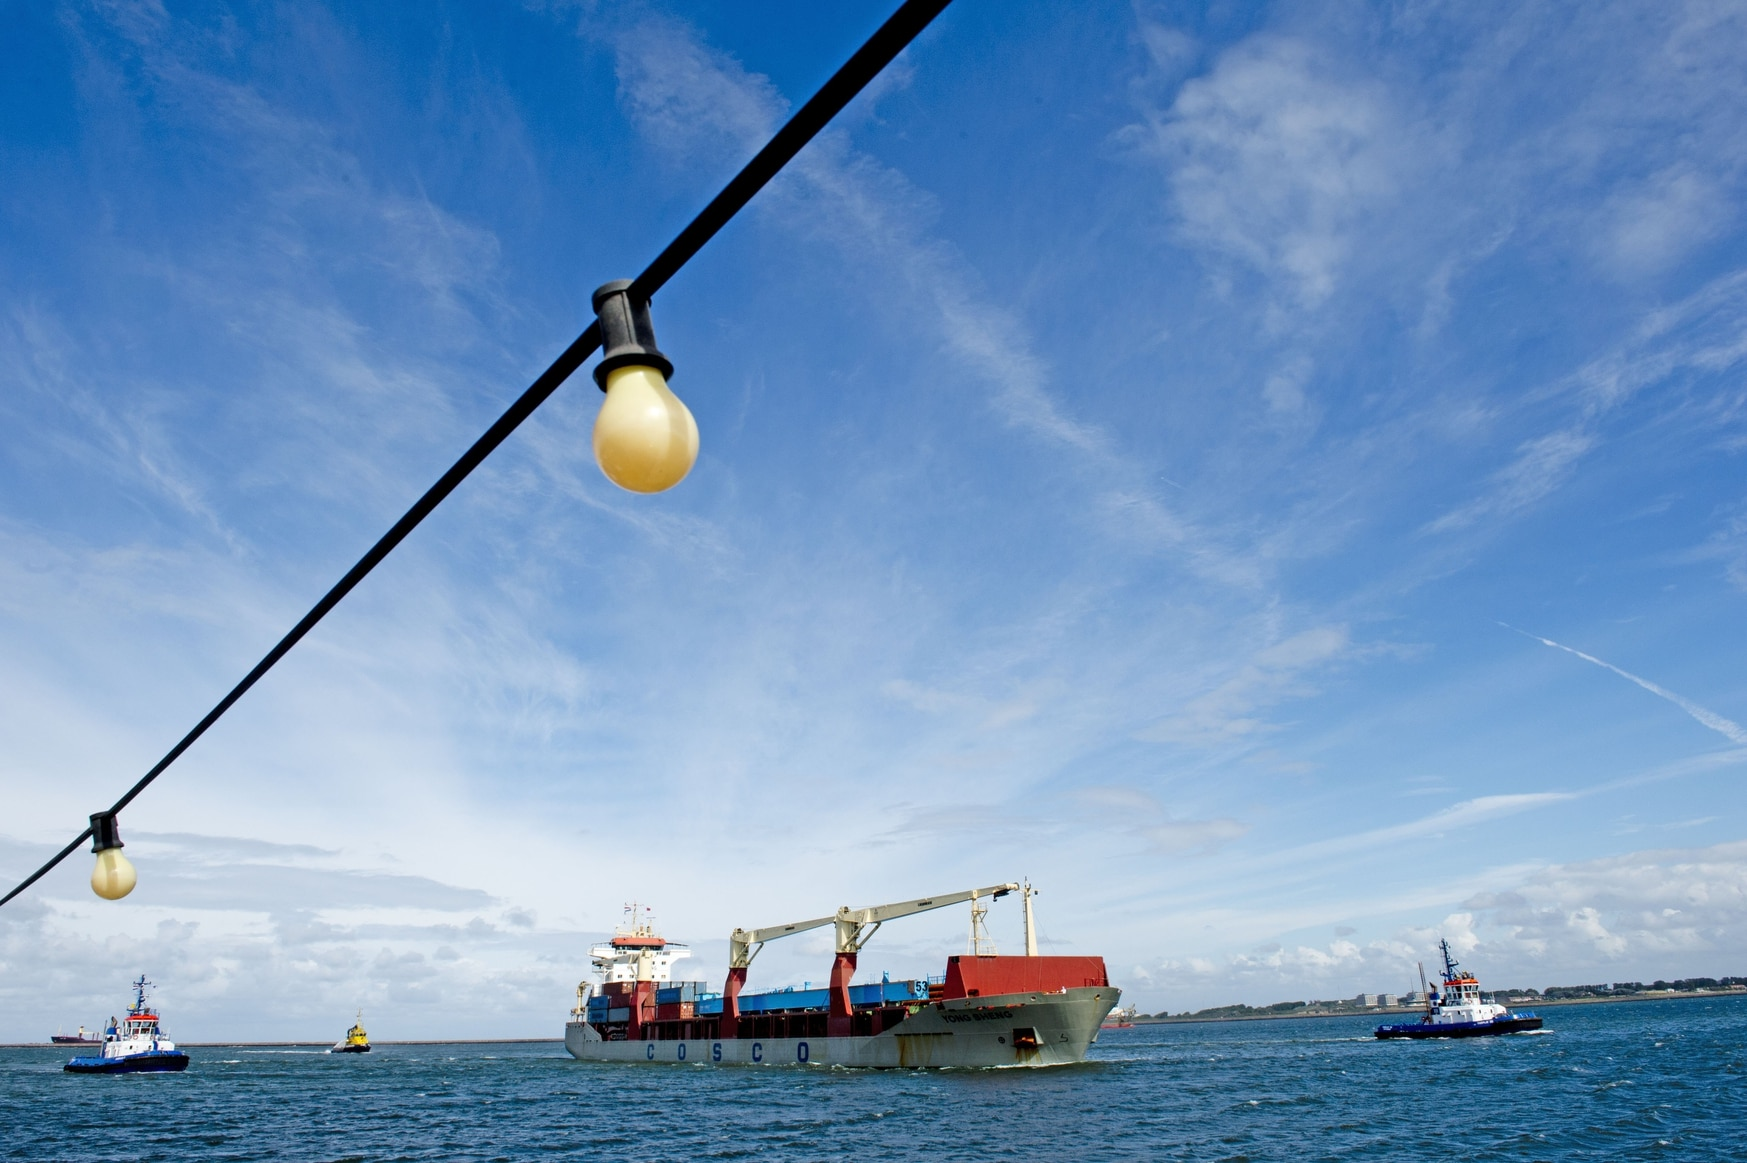 A Chinese cargo ship arrives at the haven of Rotterdam on Sept. 10, 2013. The Yong Sheng was the first commercial Chinese ship to transit through the Northern Sea Route, which connects the Atlantic and Pacific oceans by way of the Bering Strait and Russia's northern coast. (Robin Utrecht/AFP via Getty Images)